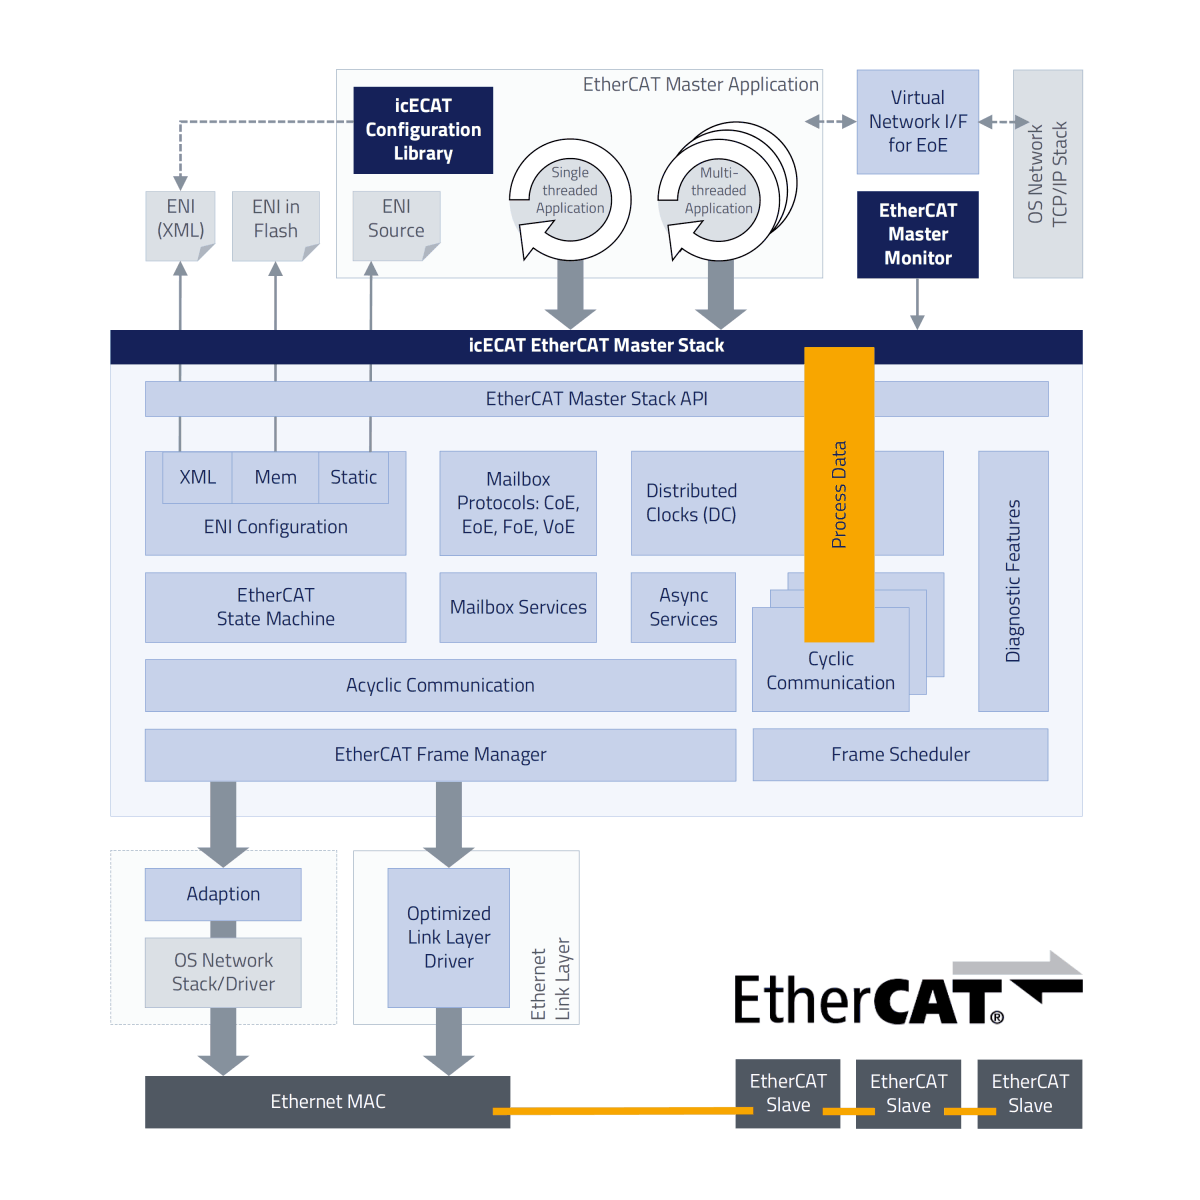 icECAT EtherCAT Master Stack Architecture